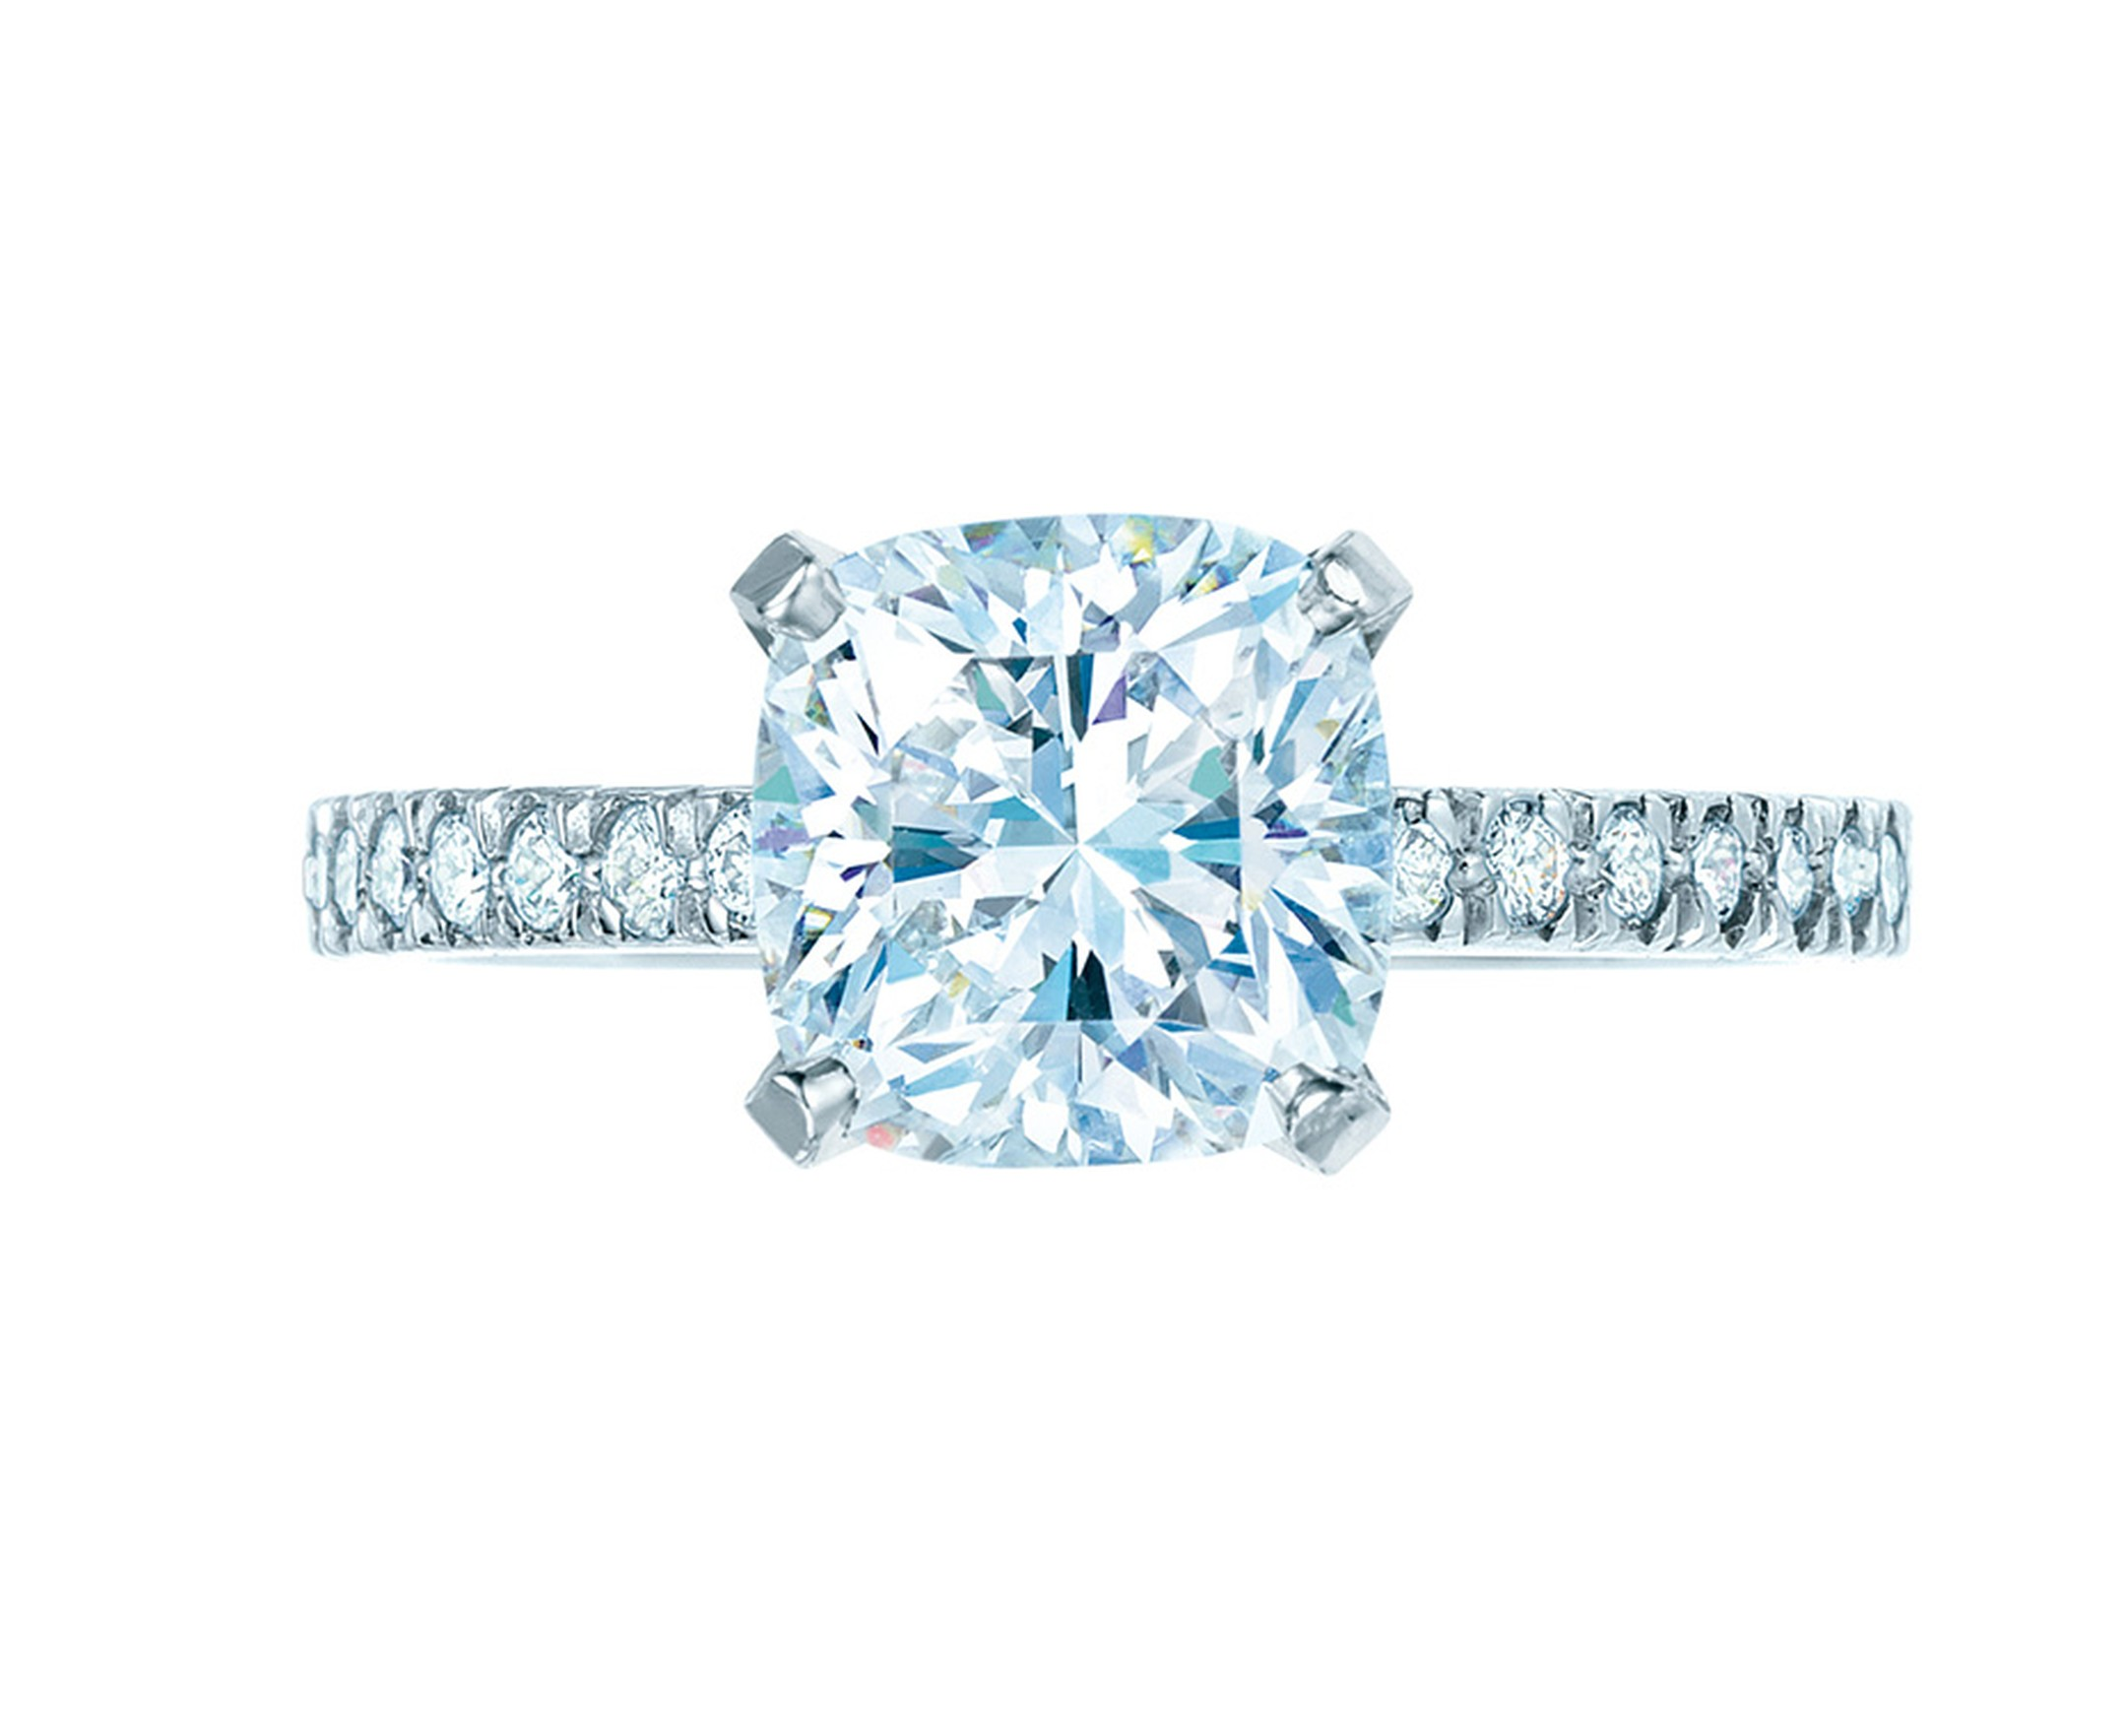 Tiffany & Co. showcases its signature Novo cut in this stunning diamond engagement ring.